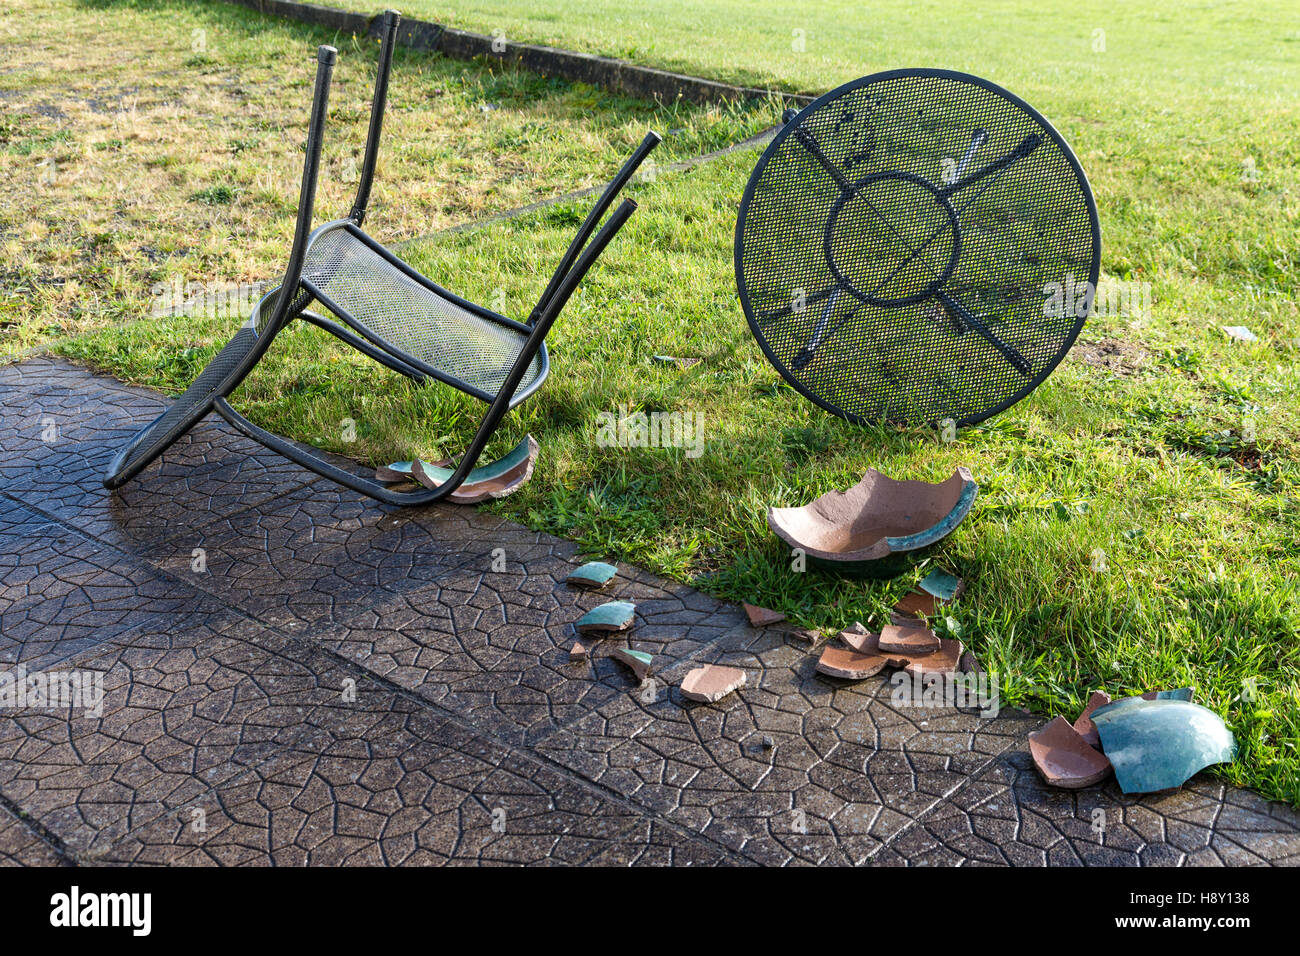 Garden Furniture Kerry blown over garden table and chairs and broken ceramic plant pot